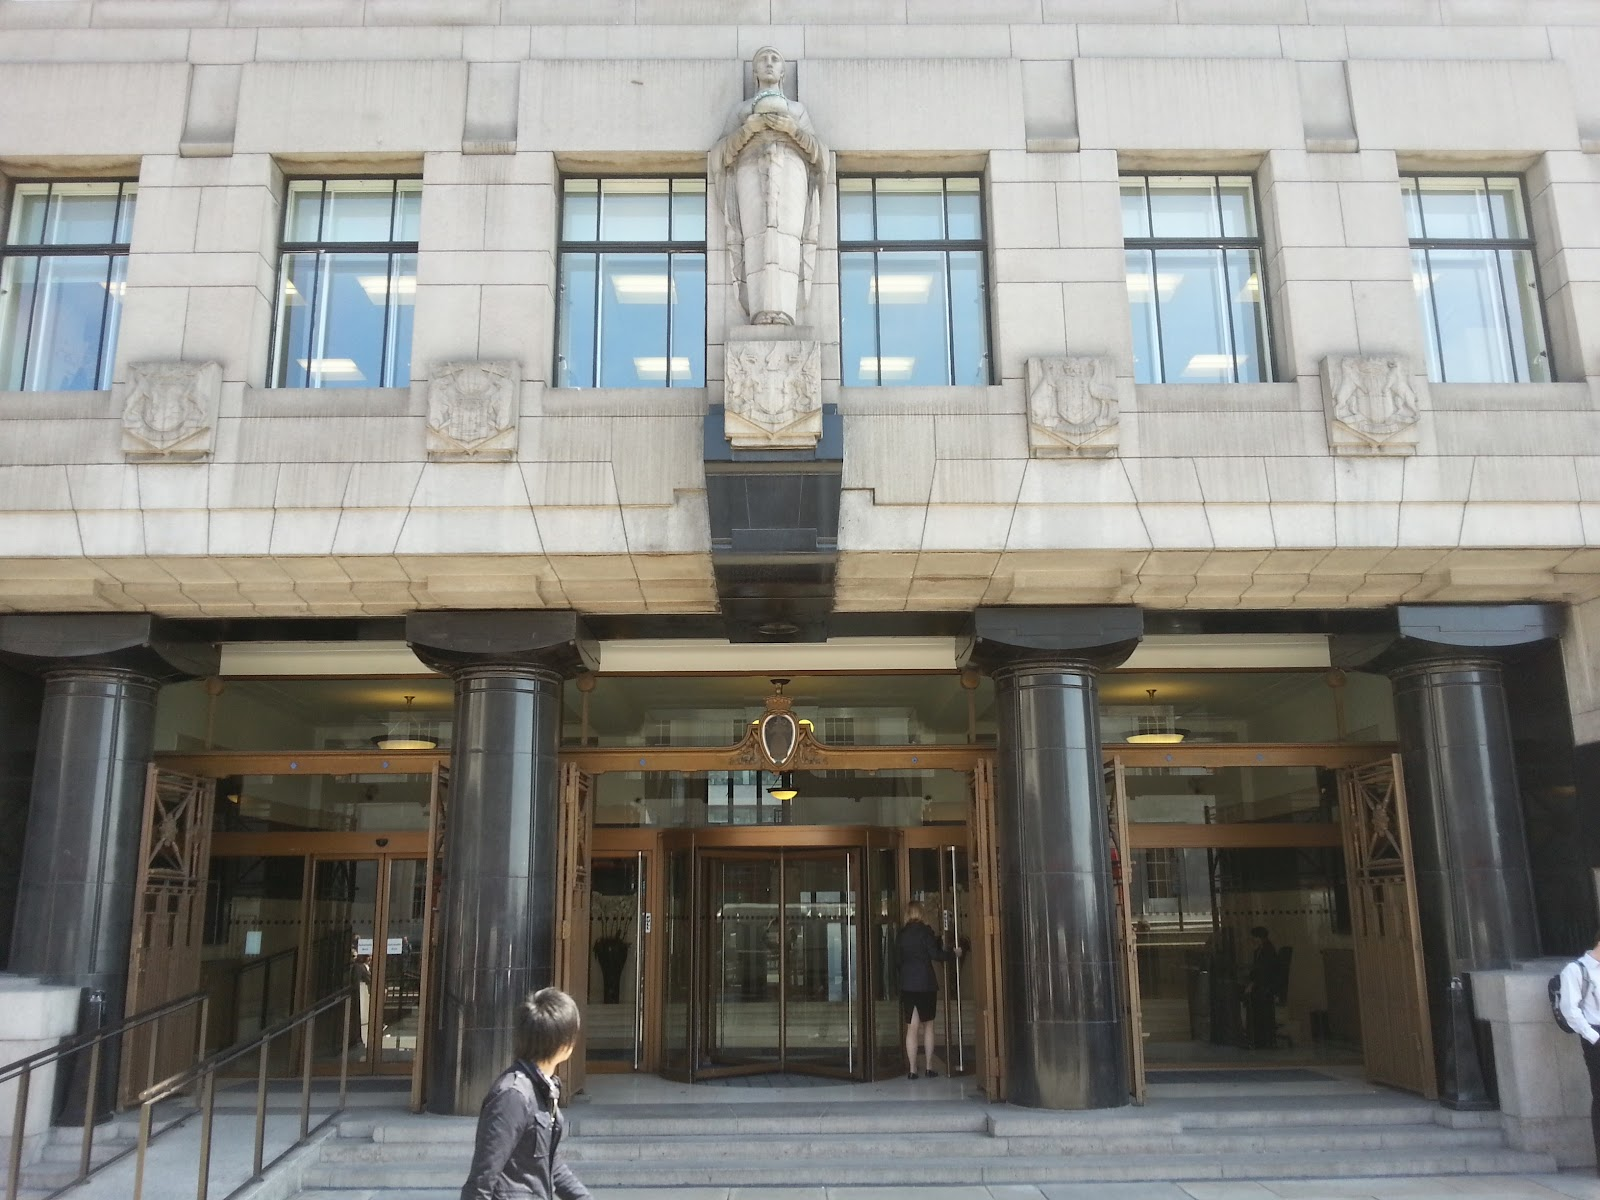 Entrance to Adelaide House